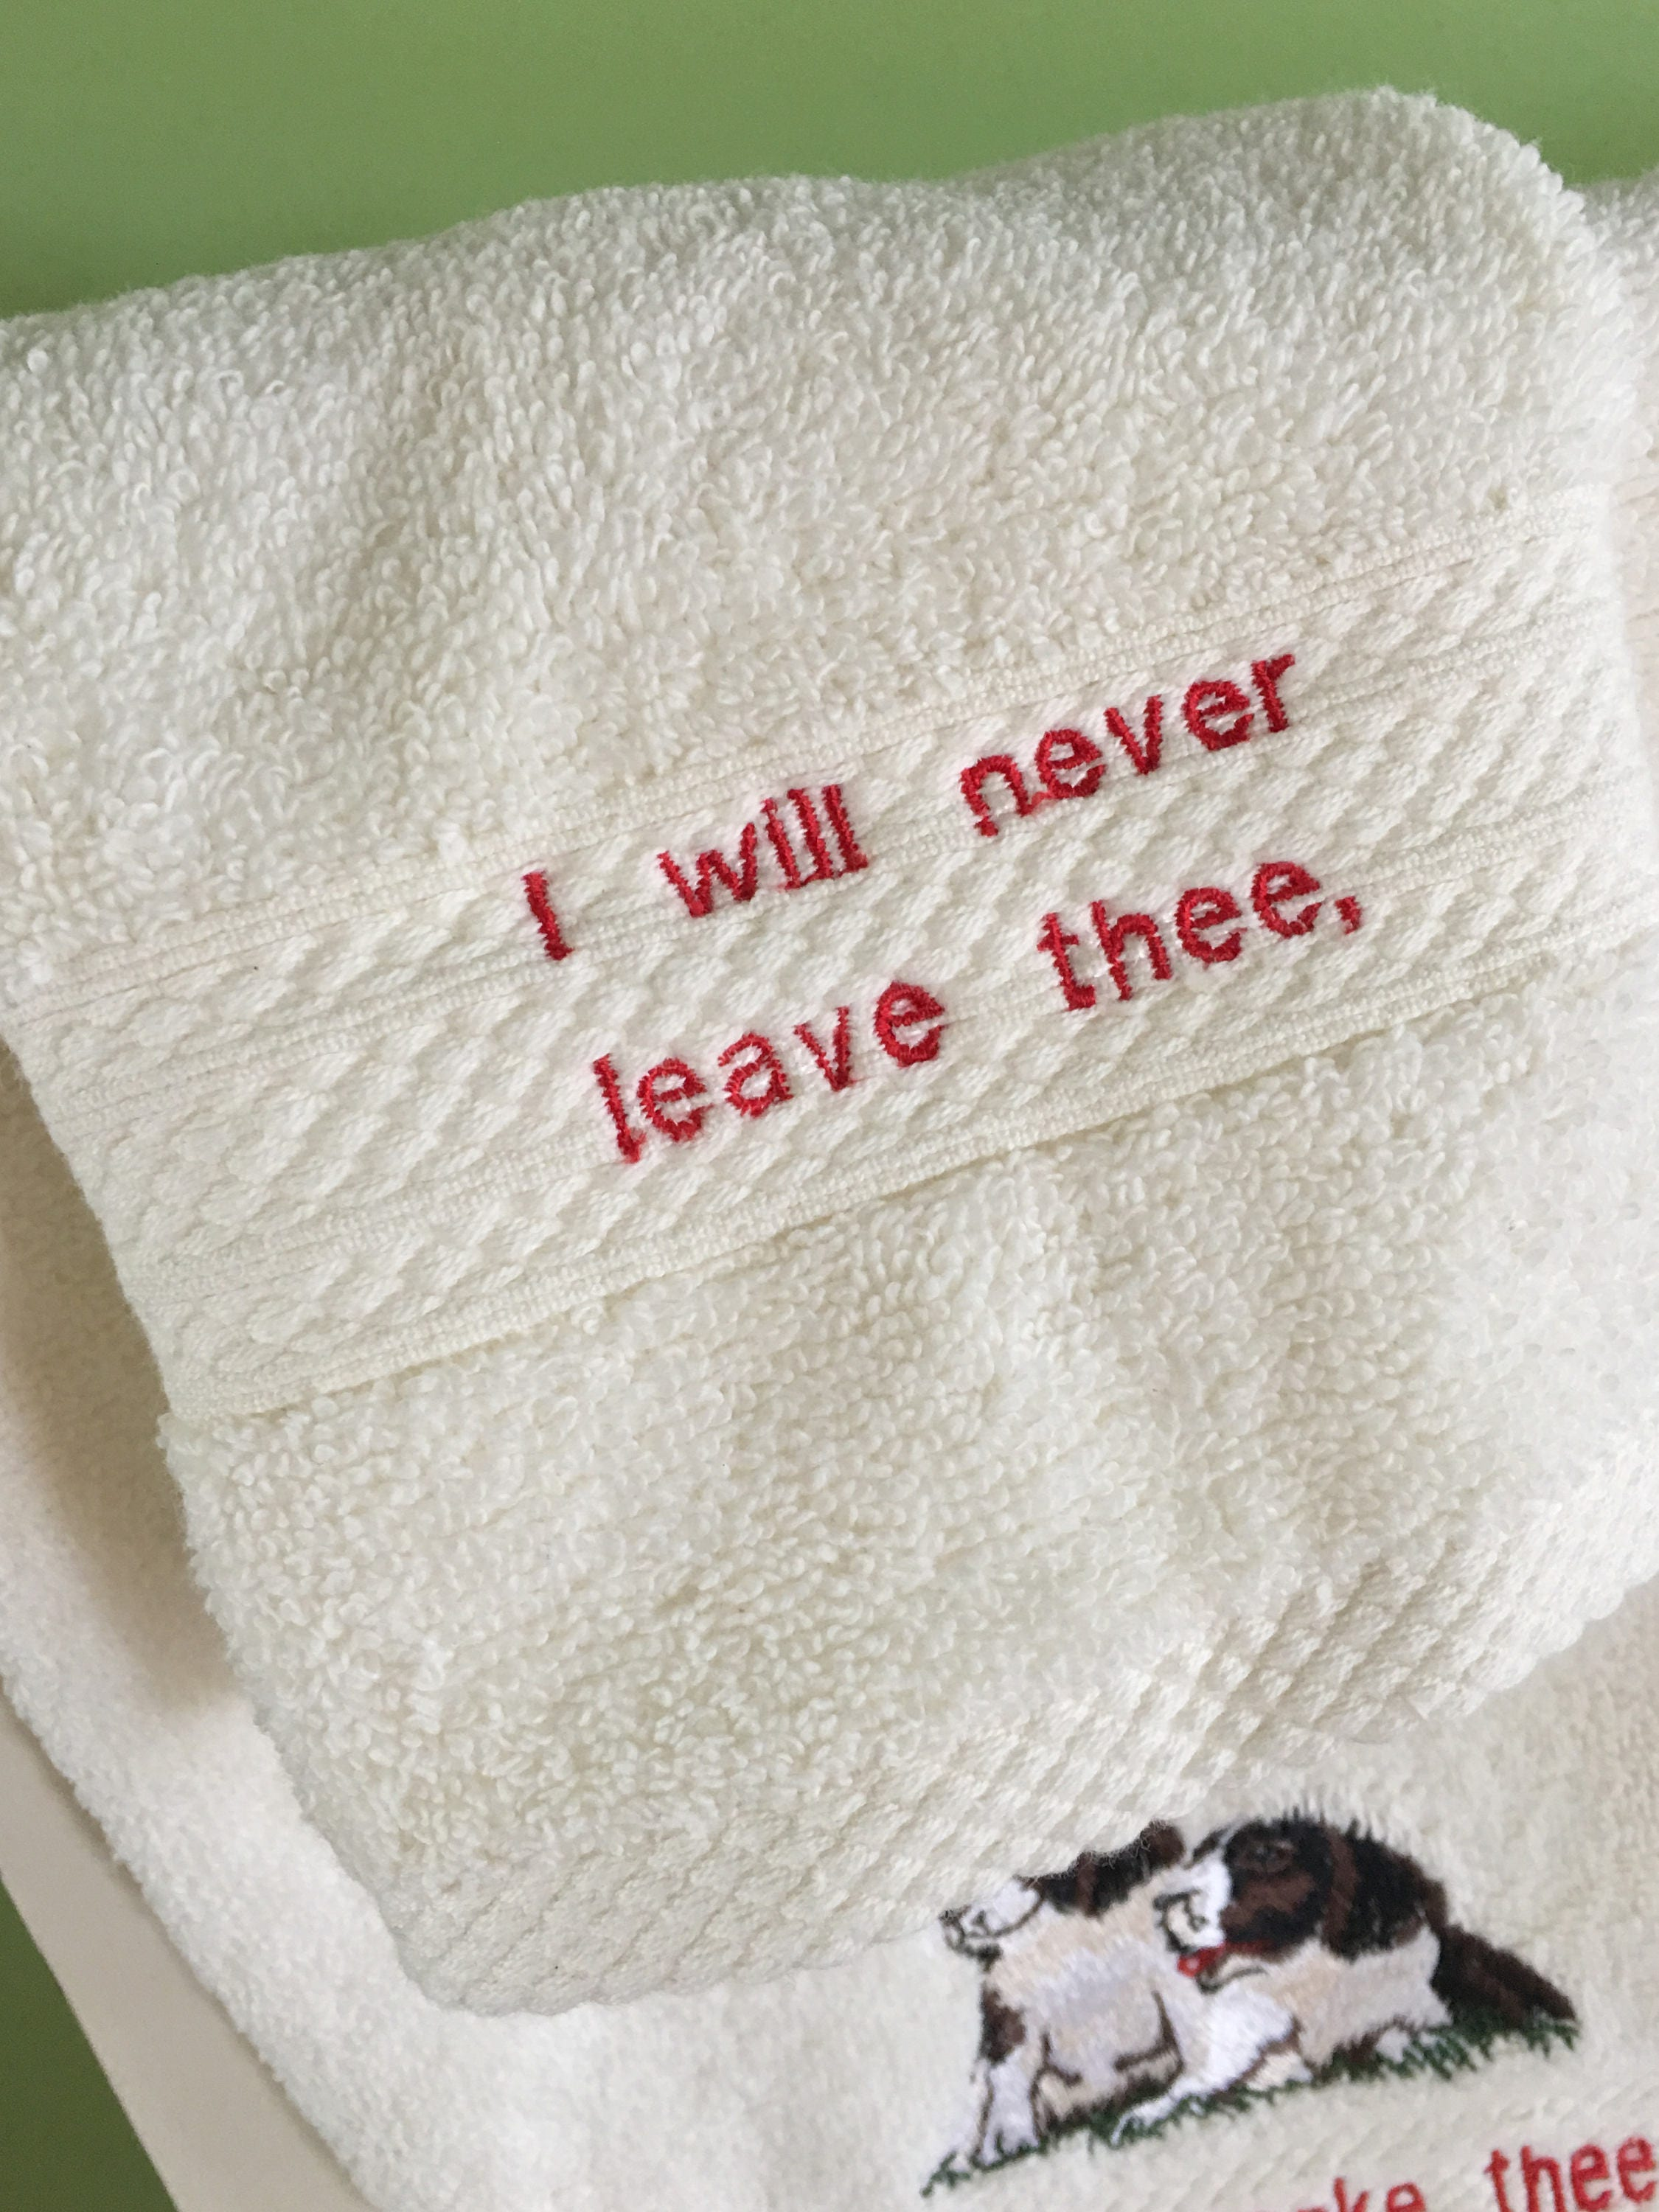 Personalized Towel Set - Personalized Embroidered Towel Set - Embroidered  Guest Towel - Scripture Embroidered Gift